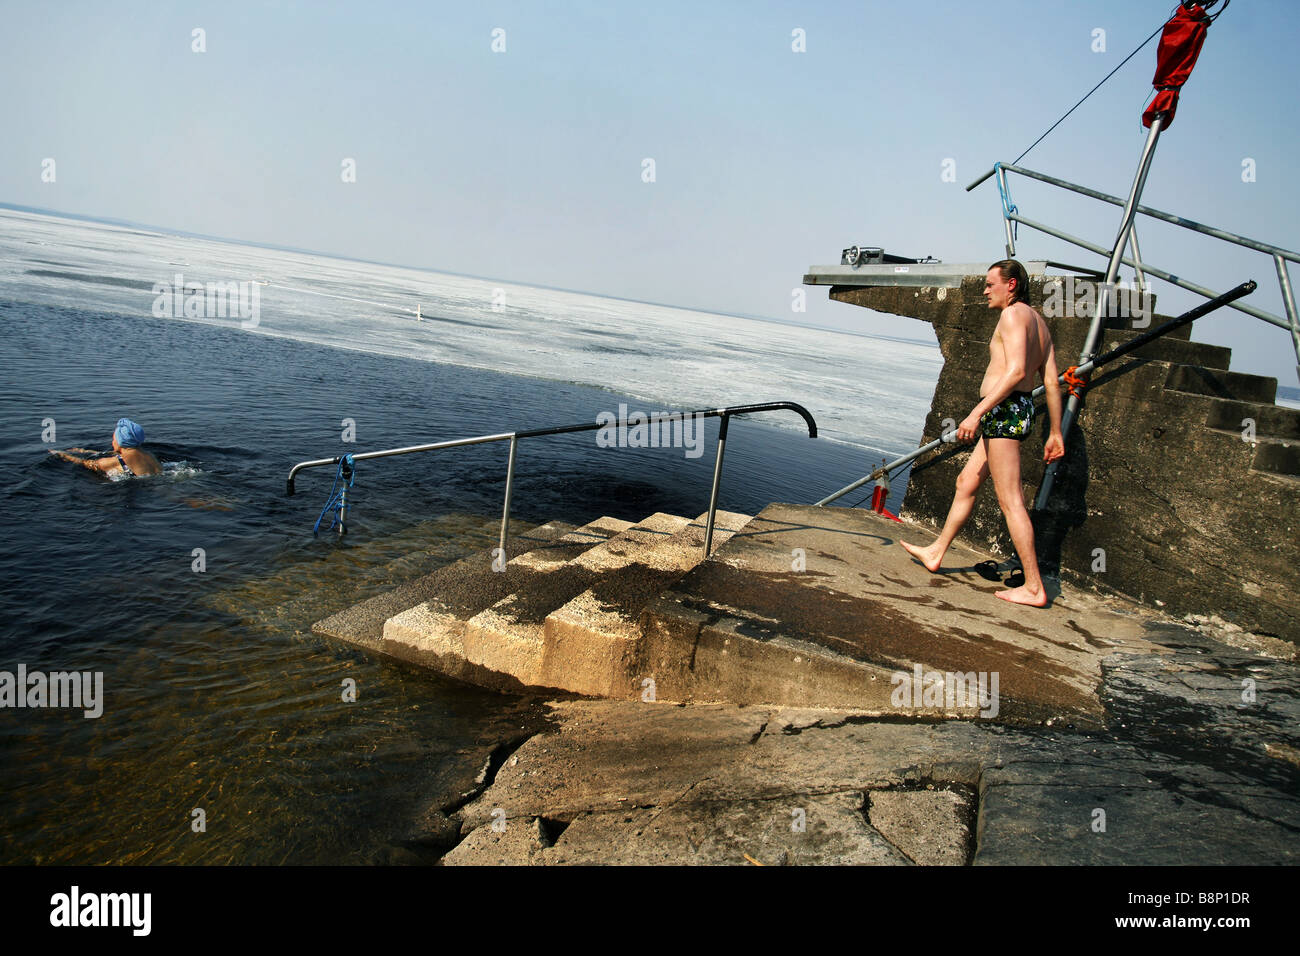 finland winter sauna stockfotos finland winter sauna bilder alamy. Black Bedroom Furniture Sets. Home Design Ideas